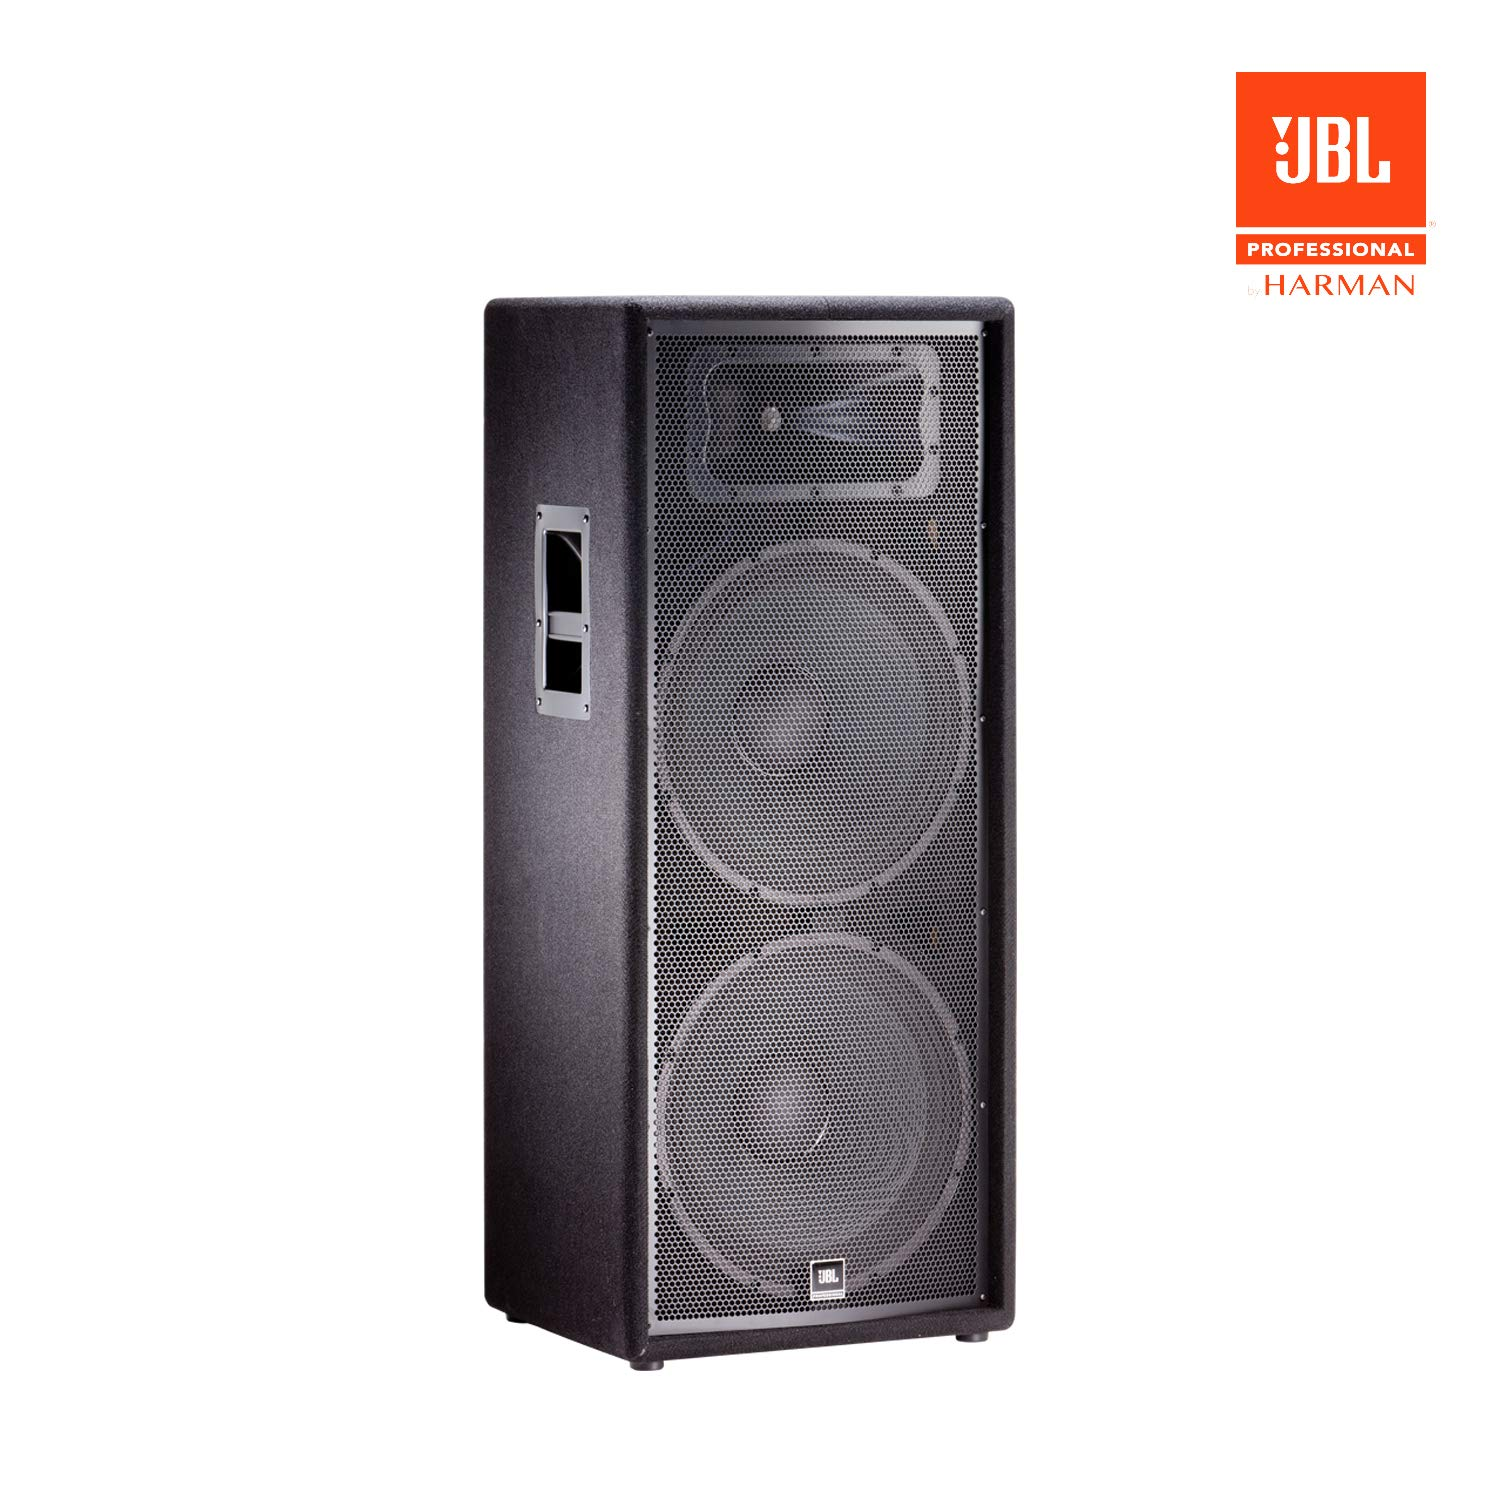 JBL Professional JRX225 2-way Sound Reinforcement Loudspeaker System